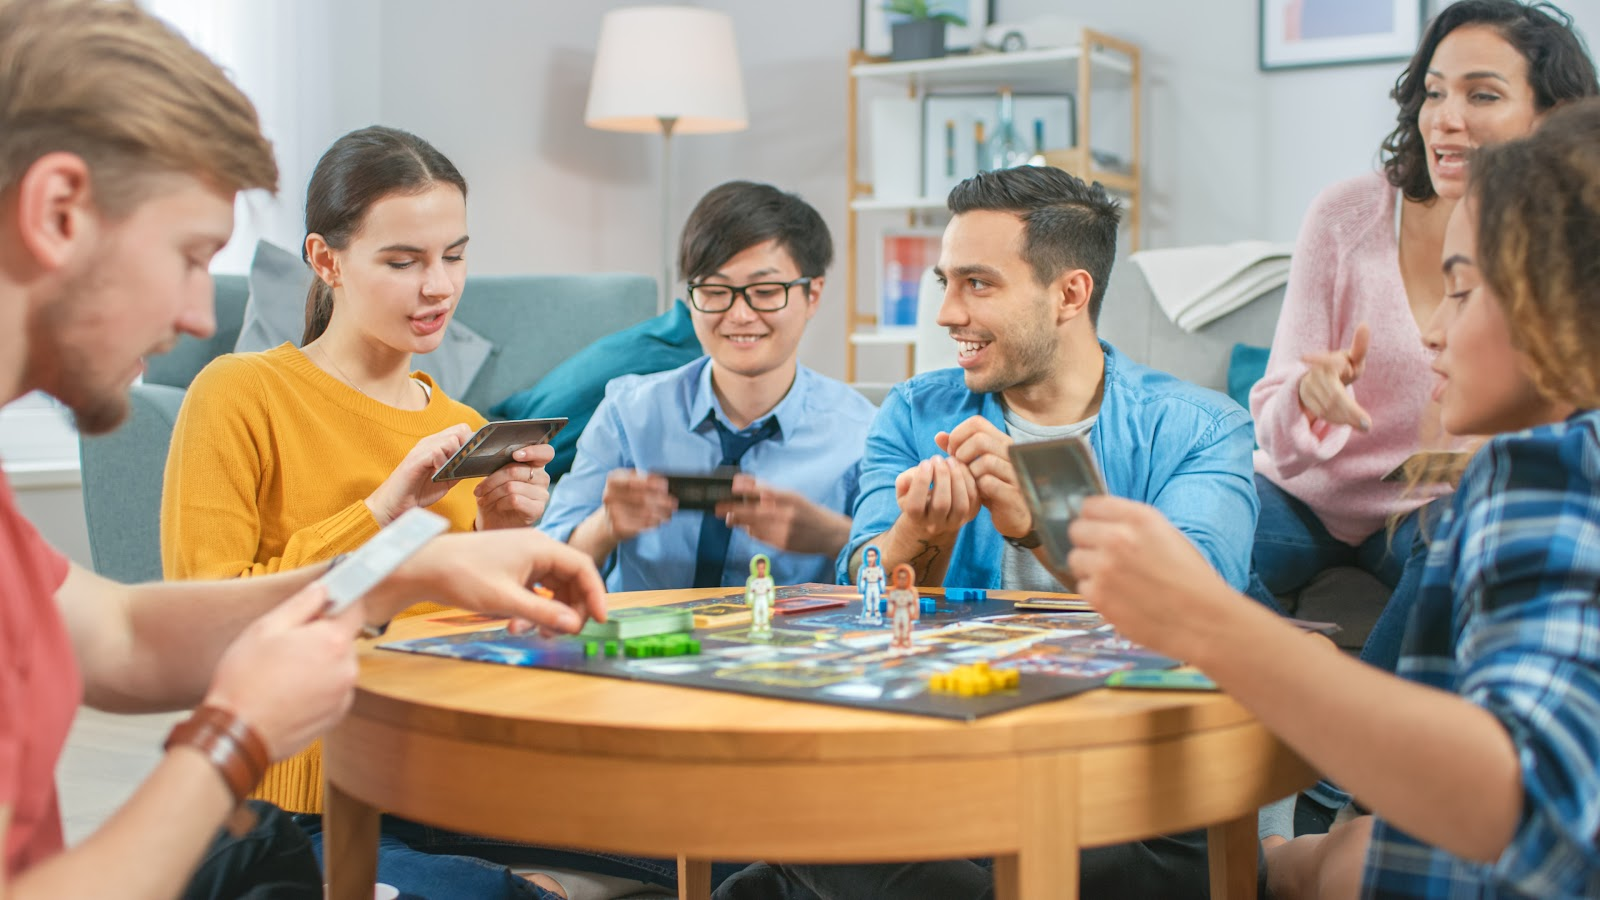 Six friends gather around a coffee table to play a board game.